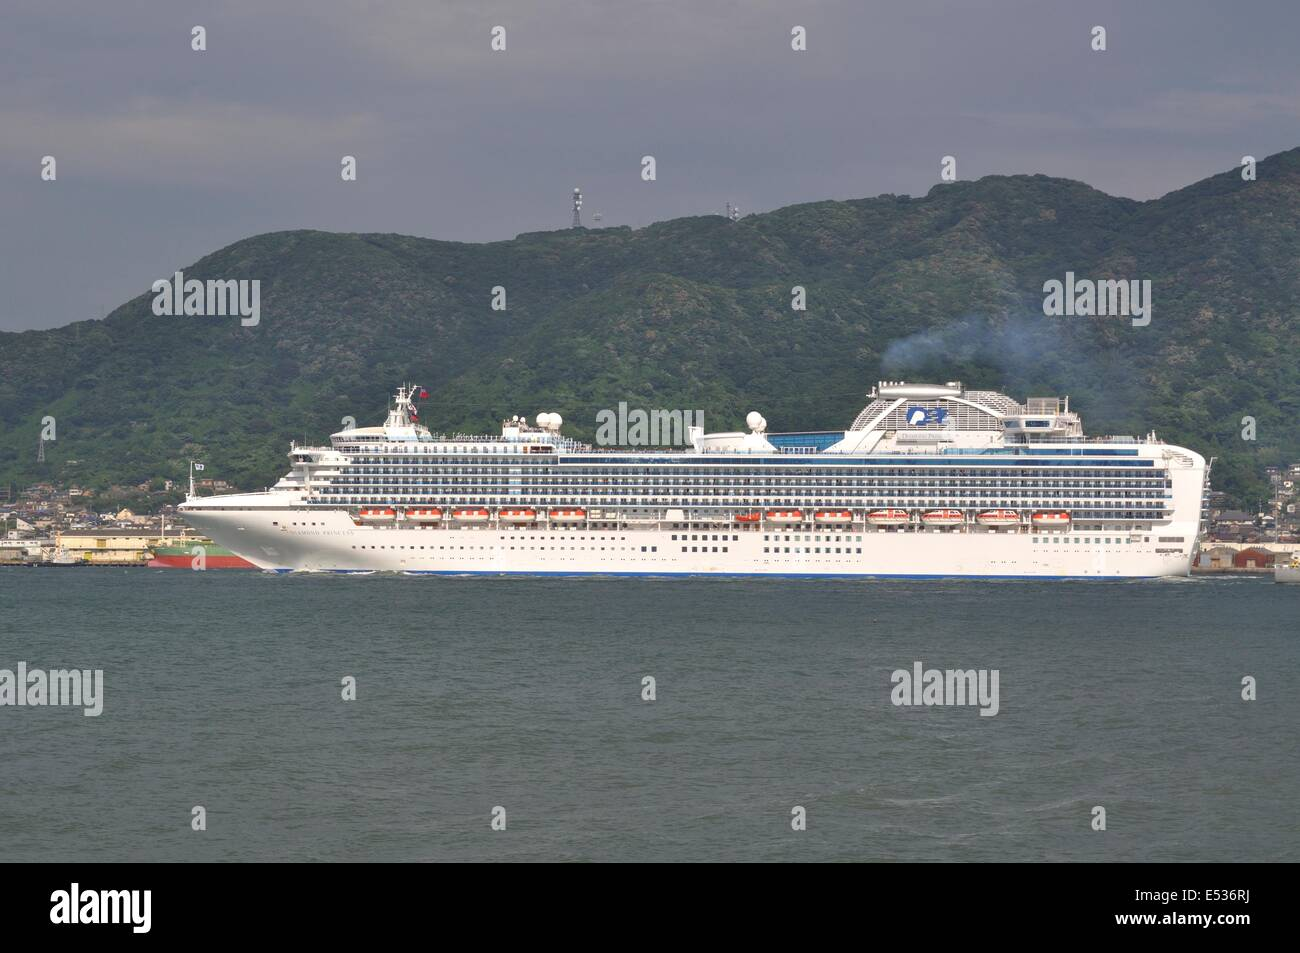 Luxury Liner Stock Photos Amp Luxury Liner Stock Images Alamy